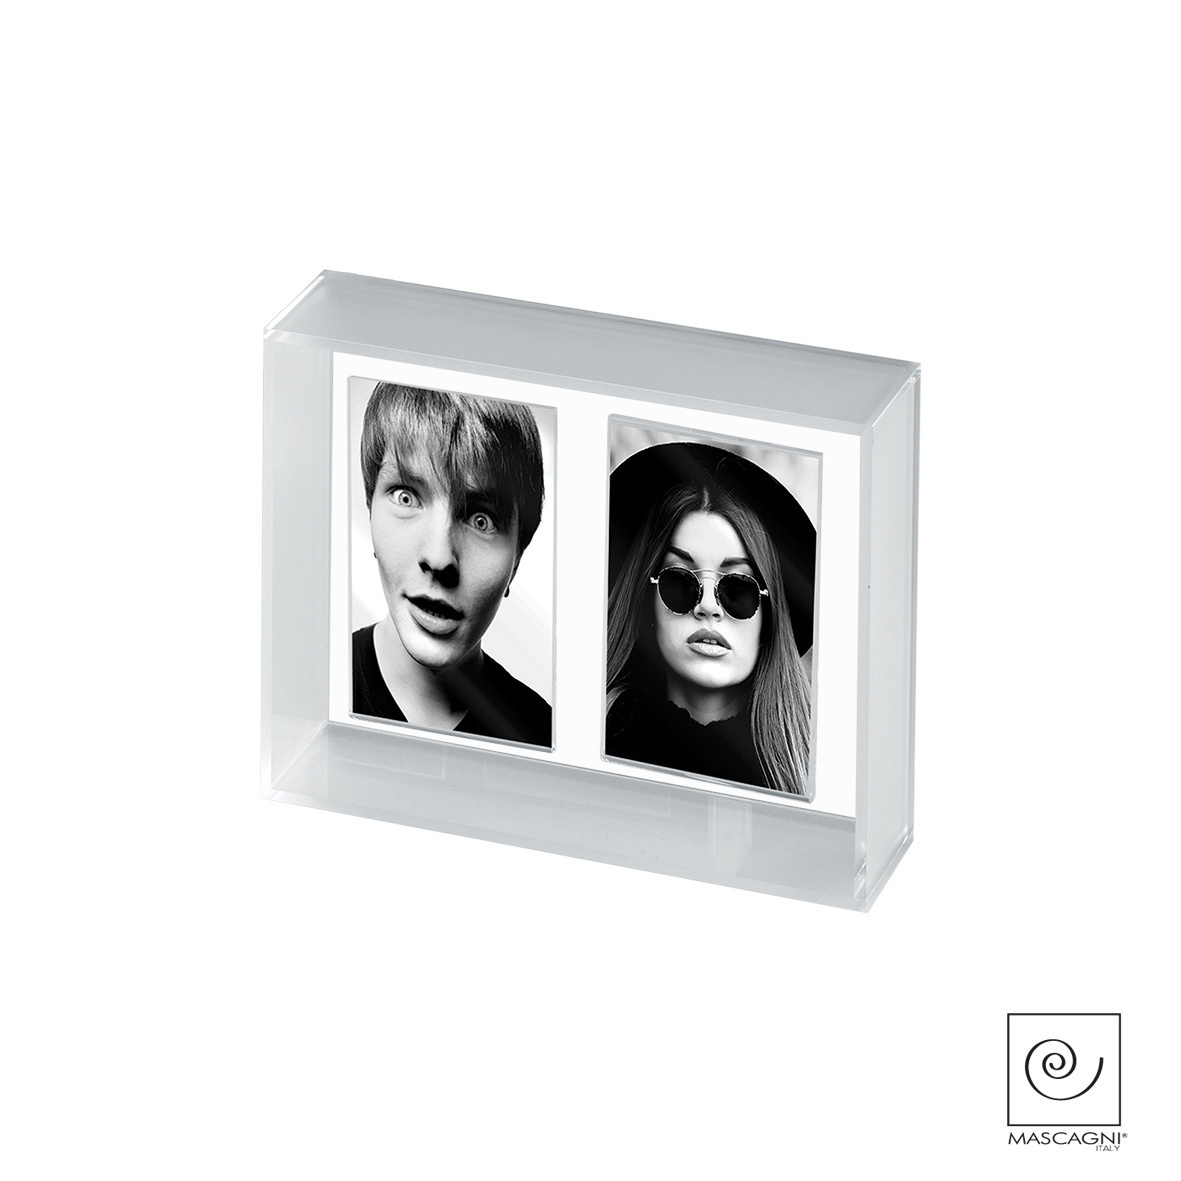 Art Mascagni A665 MULTIPLE FRAME - COL. SILVER